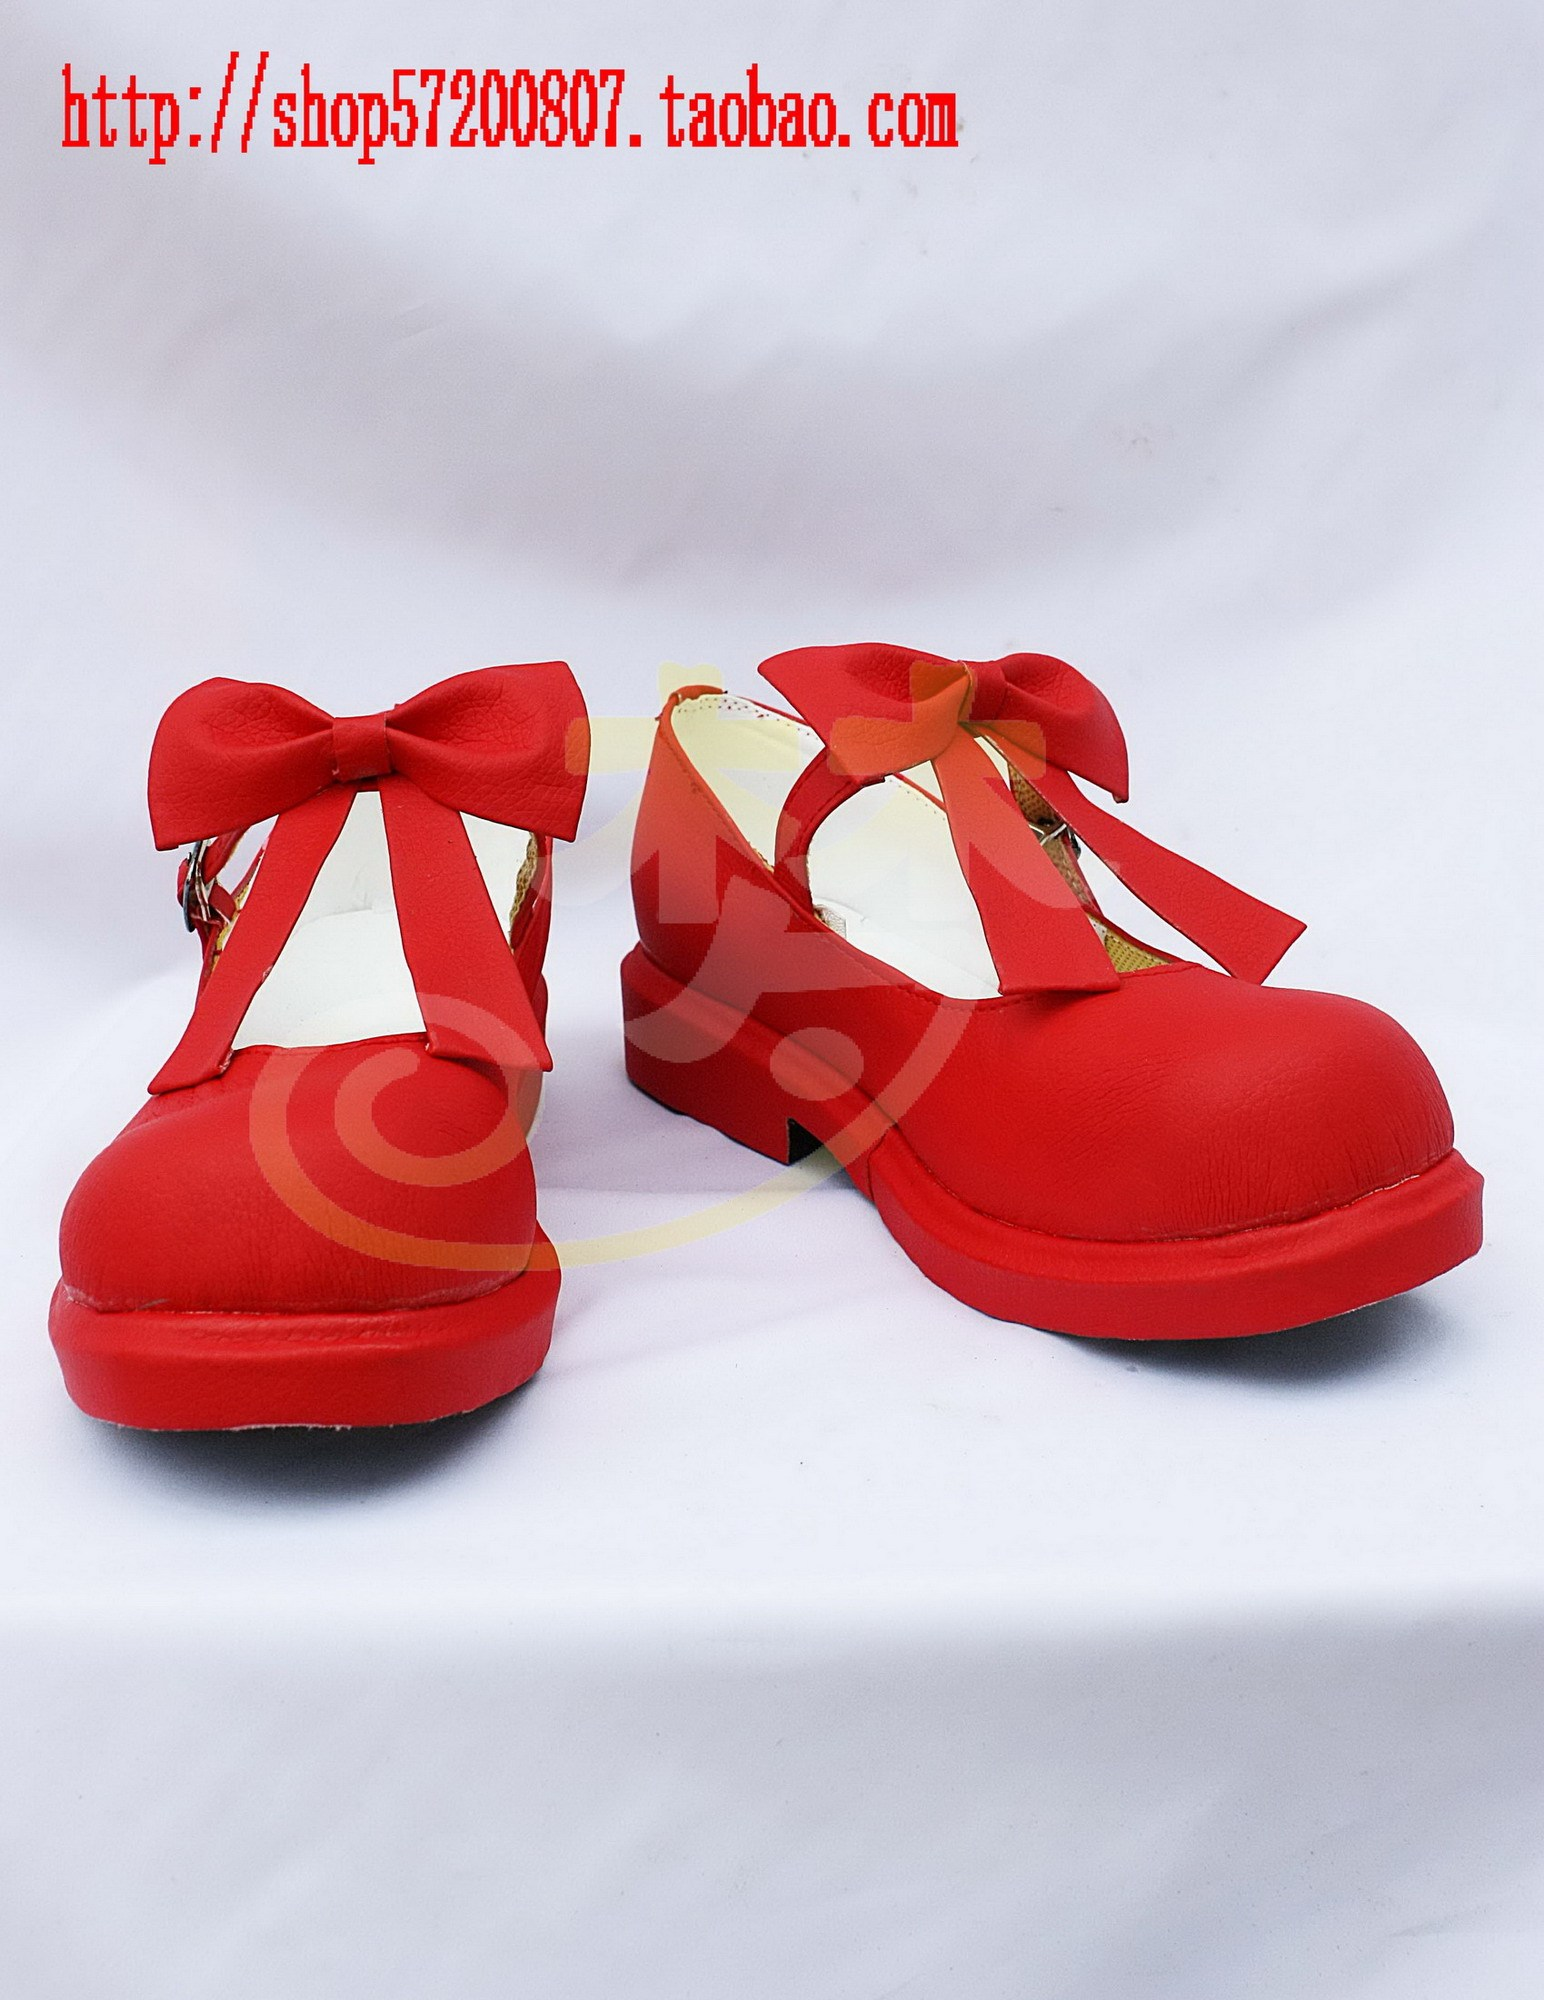 Cardcaptor Sakura cosplay shoes anime red boots<br><br>Aliexpress